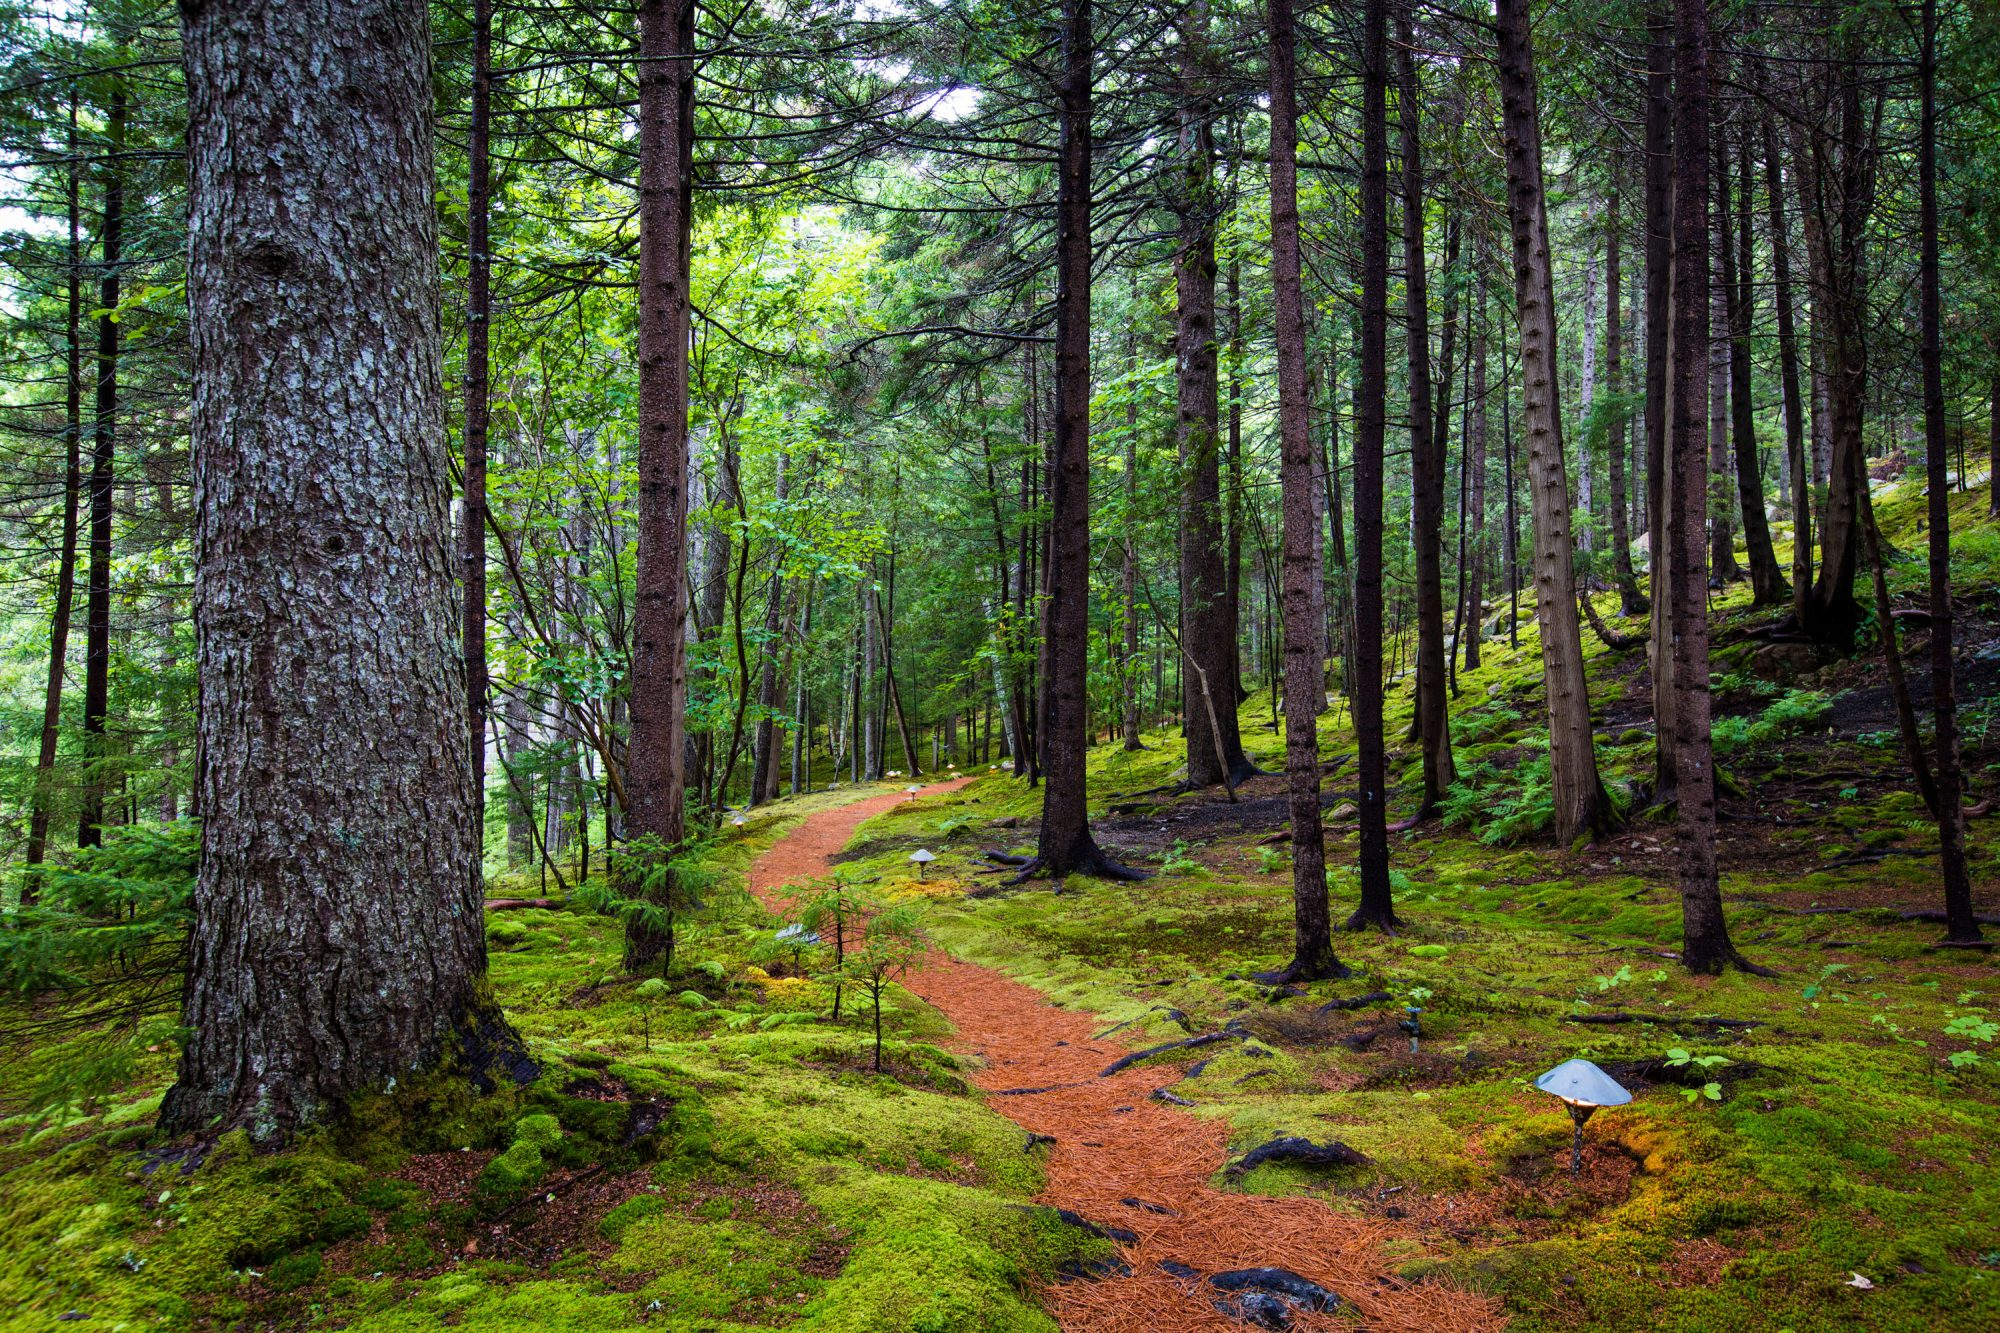 white-pine needle path in mossy forest